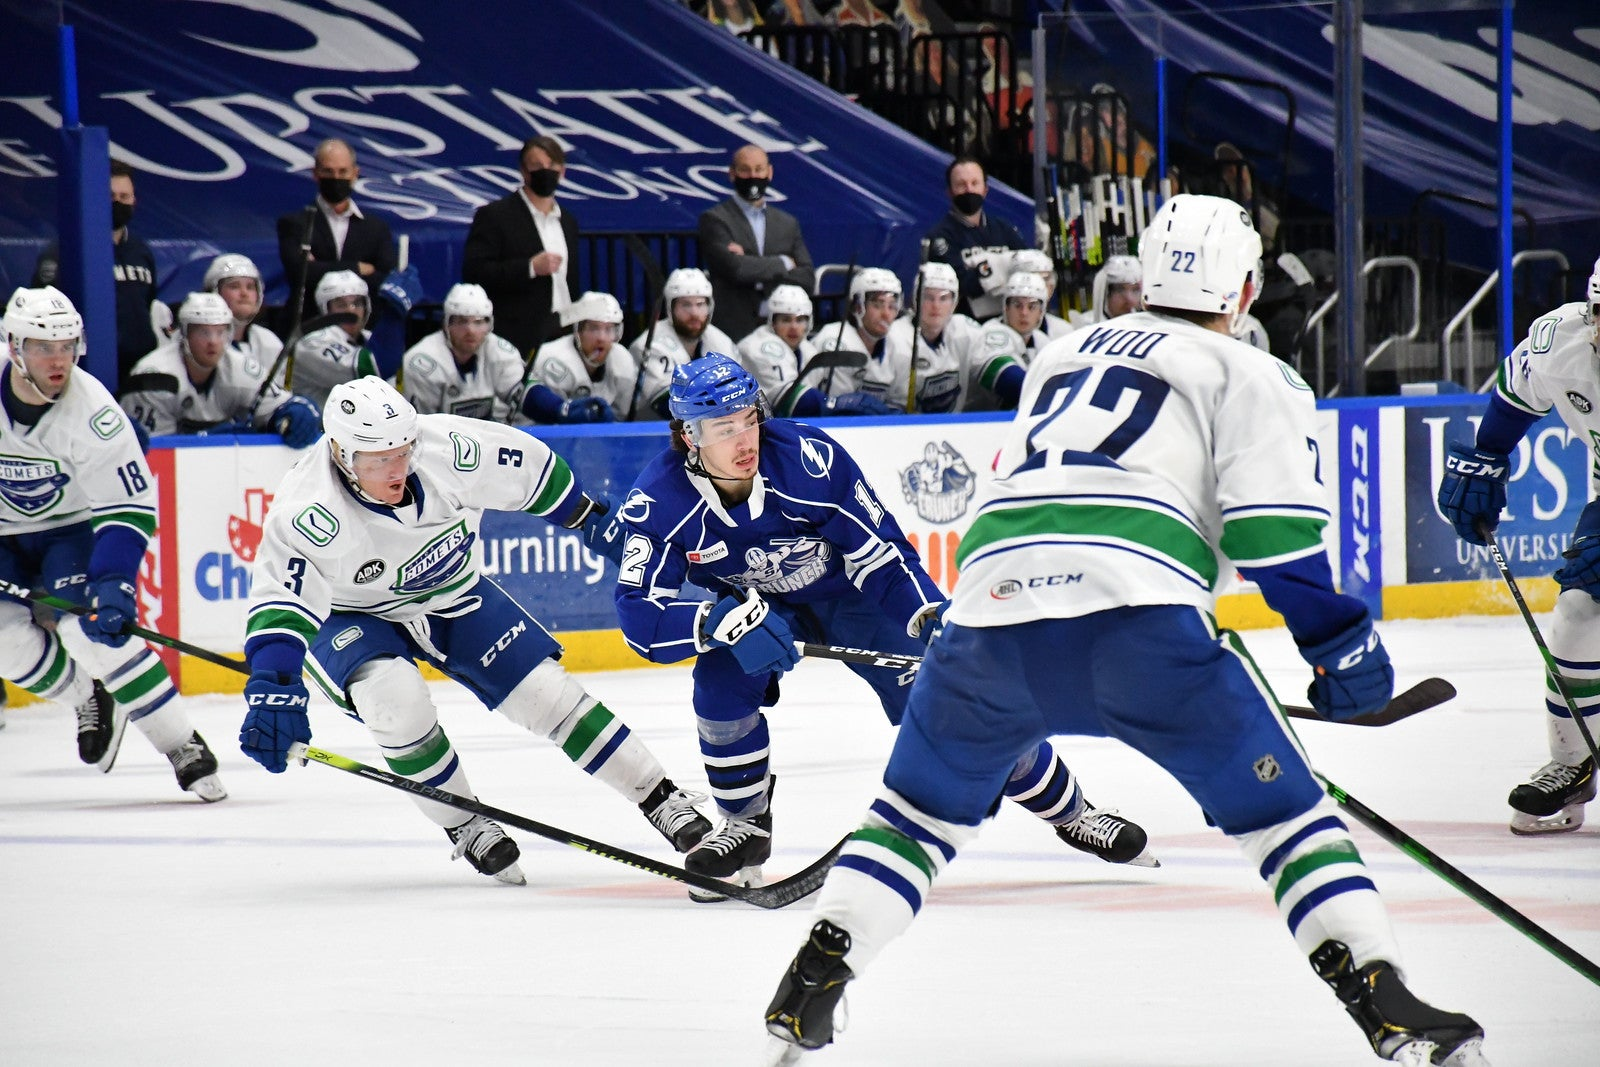 COMETS STUMBLE IN ROAD LOSS TO CRUNCH